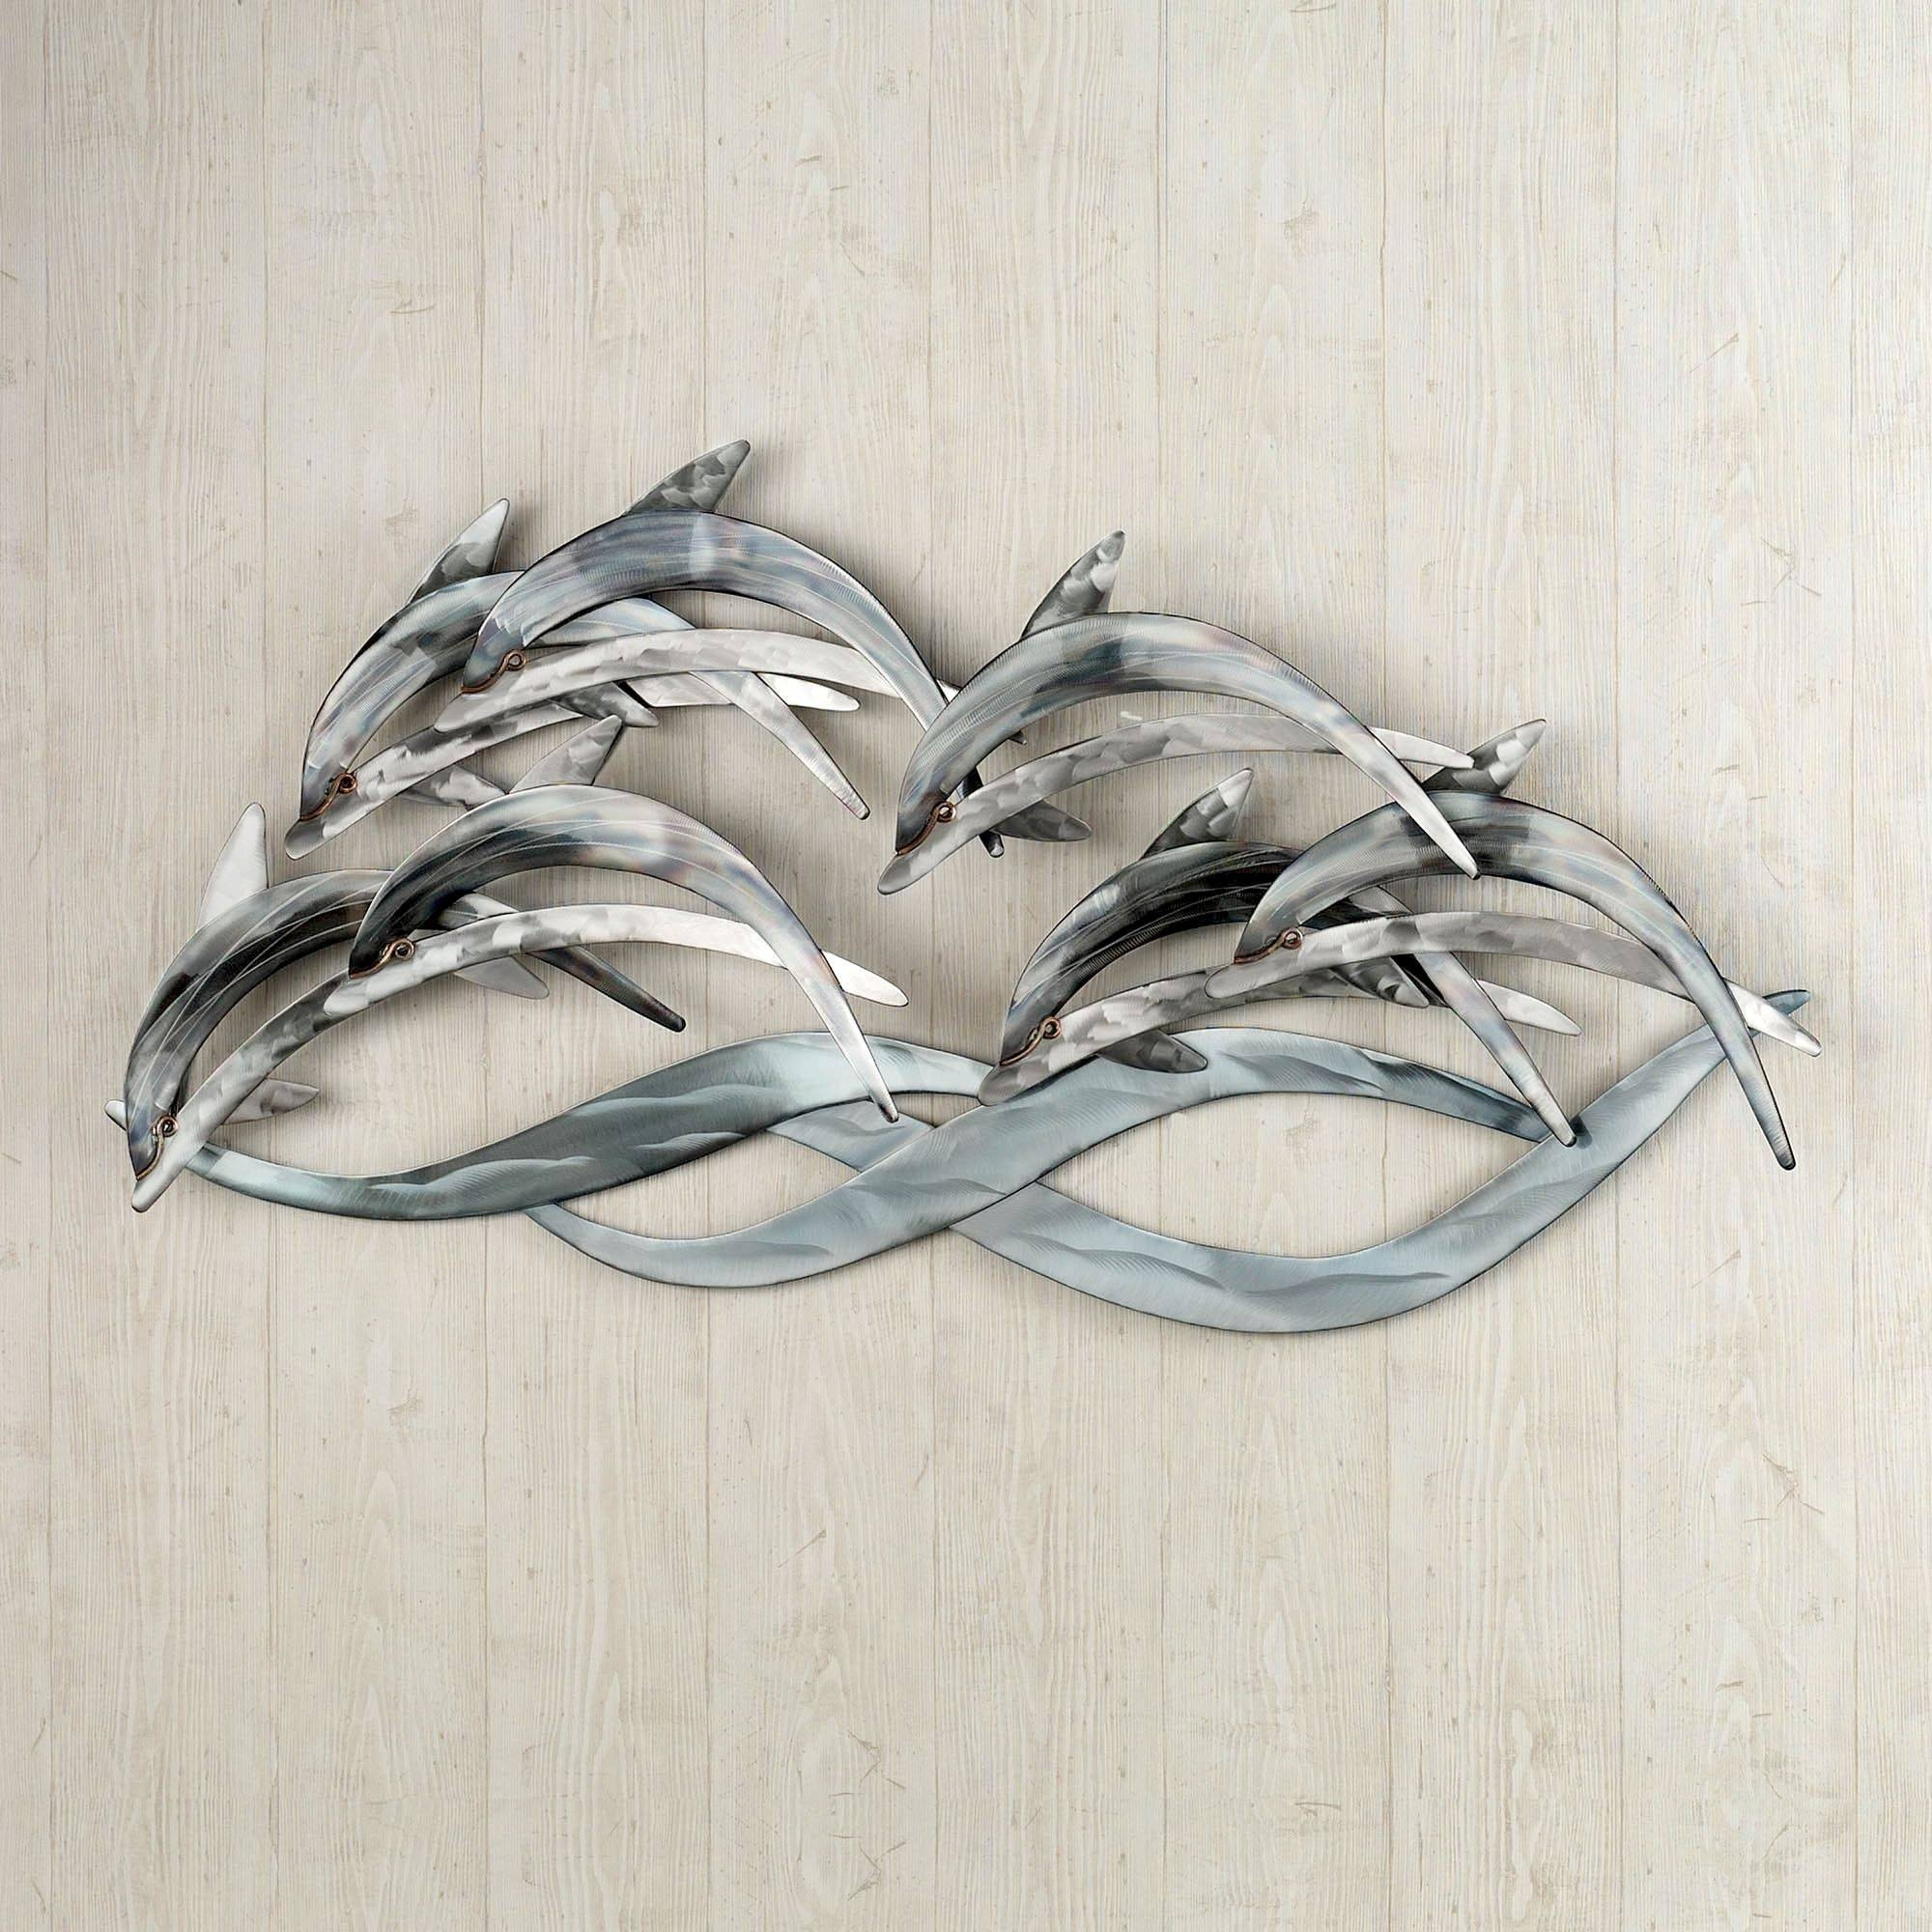 Wave Dancers Dolphin Stainless Steel Wall Sculpture With Regard To Most Current Animal Metal Wall Art (View 19 of 20)